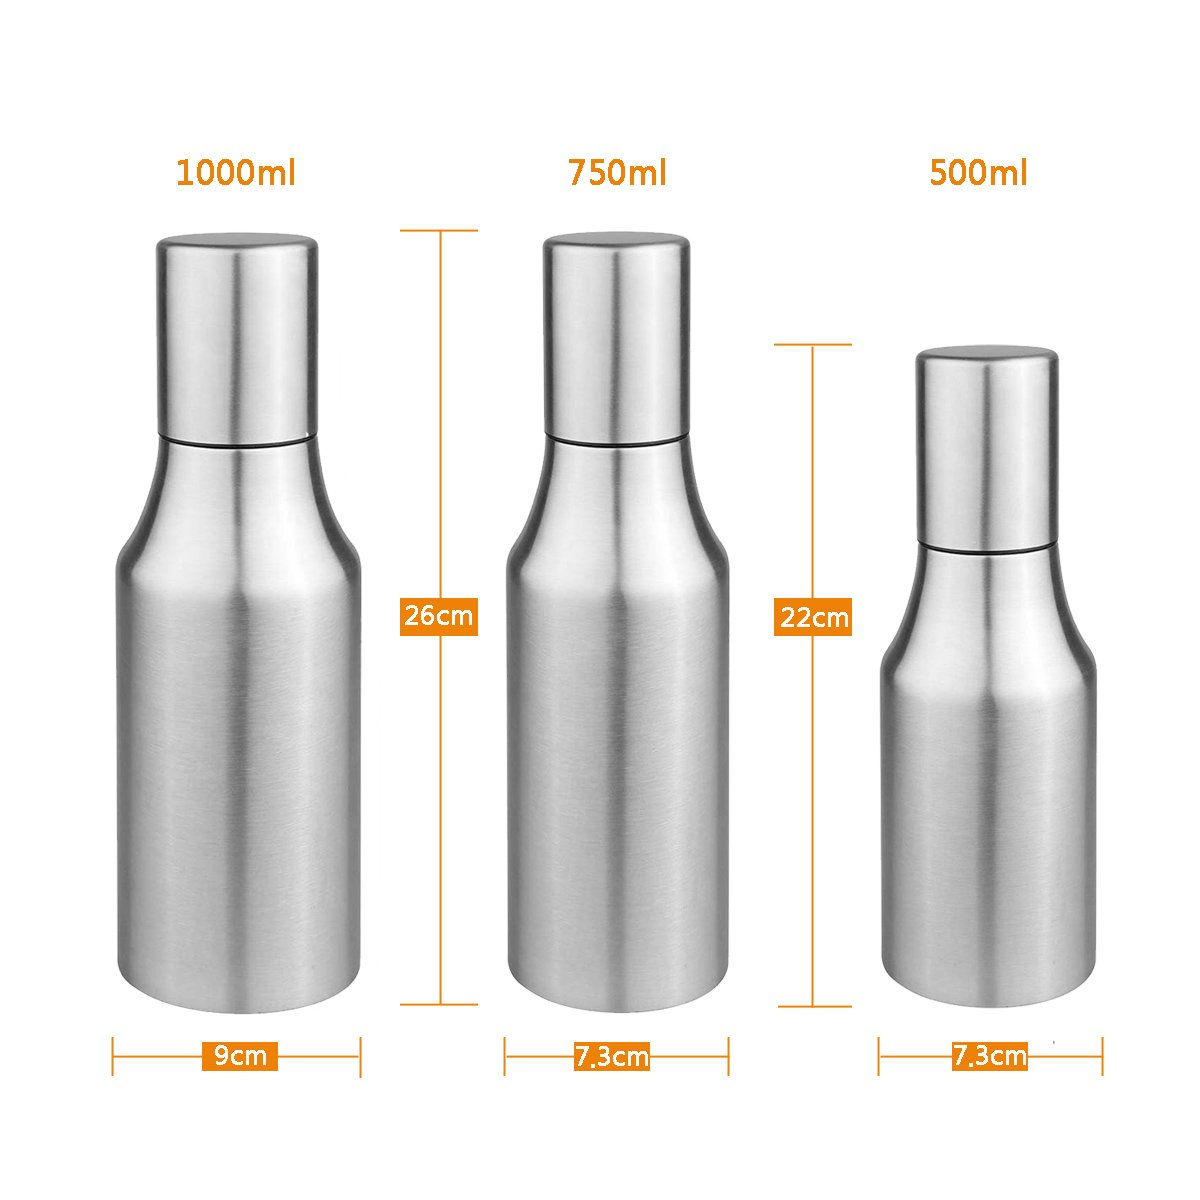 Oil Dispenser Oil Vinegar Pourer Bottle Olive Oil Container Safey Exquisitely Leak Proof Unbreakable Oil Quantity Control Fits Perfect for BBQ 17oz 500ML Flyboo0002 COMINHKPR145351